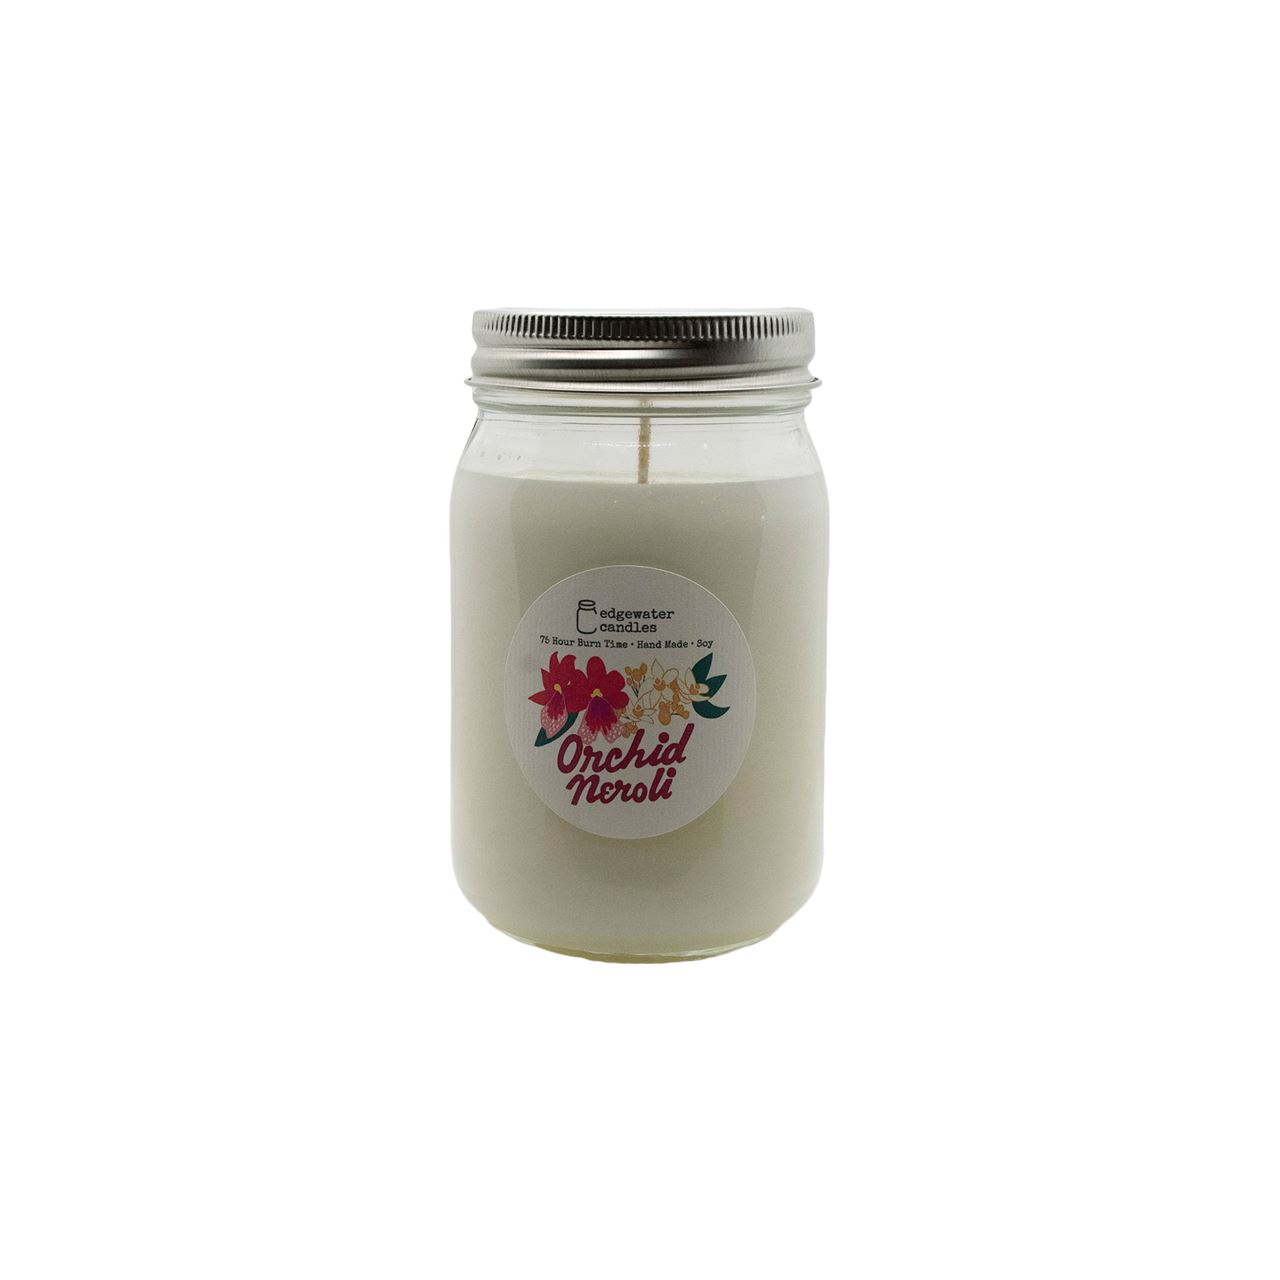 Orchid Neroli Jar by Edgewater Candles